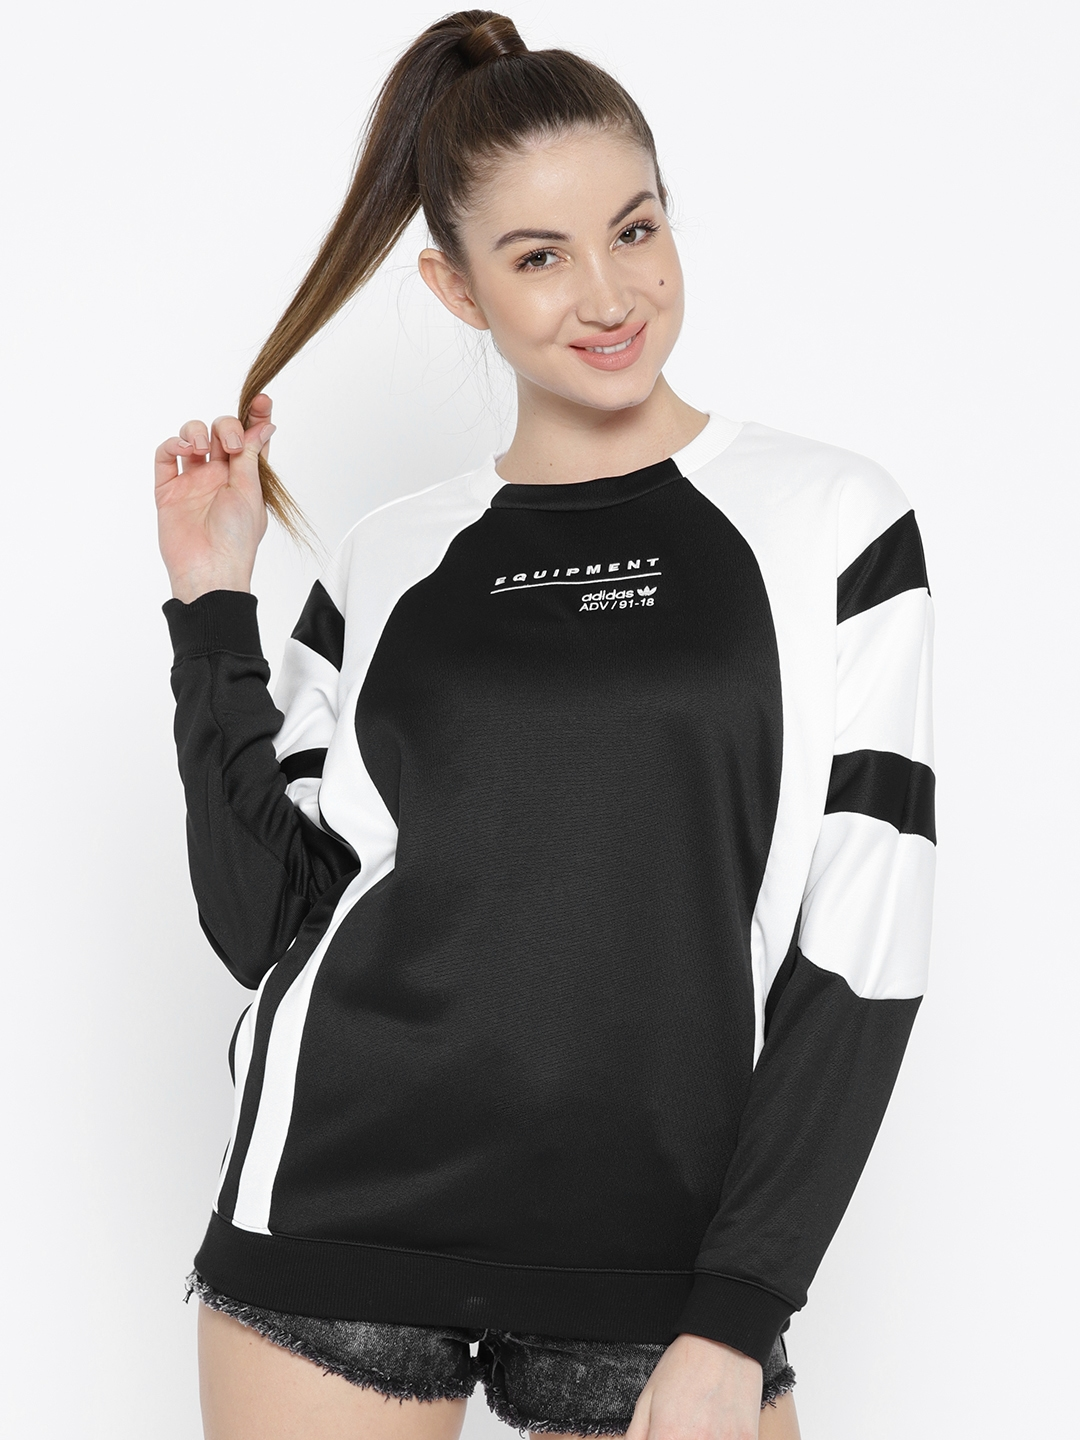 c4efd2ec ADIDAS Originals Women Black & White Equipment OG Colourblocked Sweatshirt